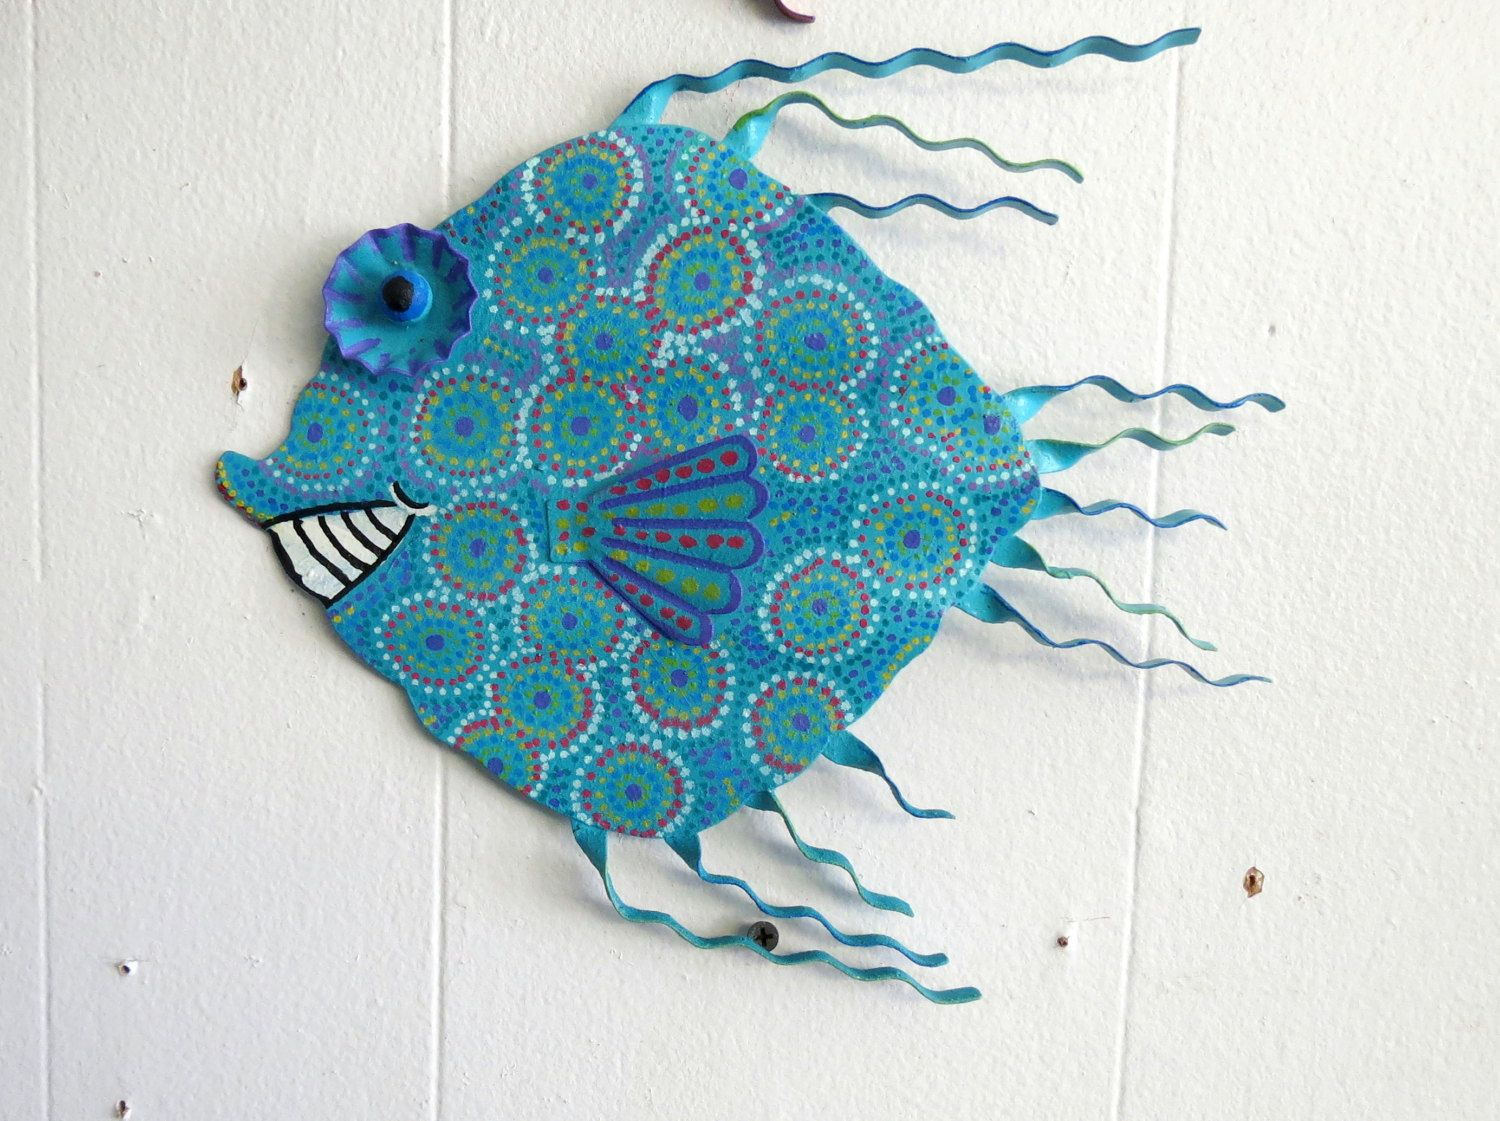 Felix murillo lleno de colores painting acrylic artwork fish art - Fun Whimsy Metal Fish Wall Or Outdoor Art Hand Painted Decor Beach Lake Nautical 11 X Smiling Fish Tropical Fish Art Metal Fish By Glancesbackvintage On